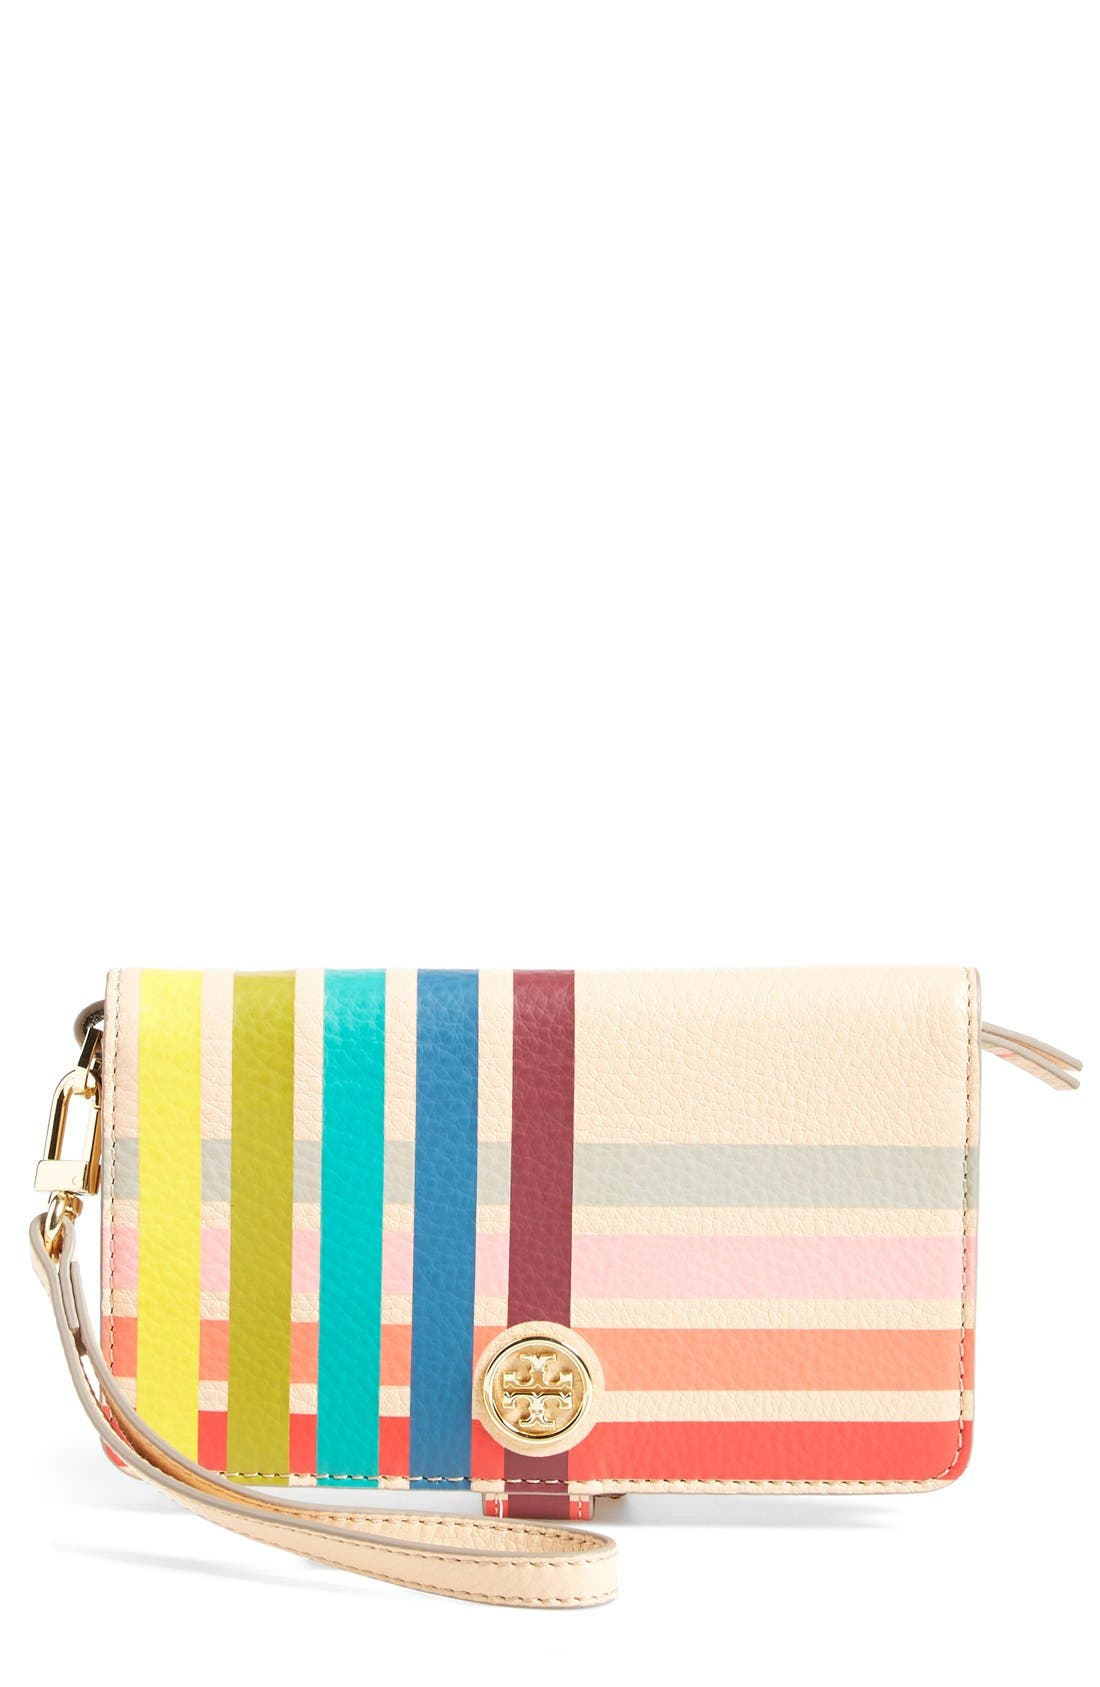 Main Image - Tory Burch Striped Phone Wristlet